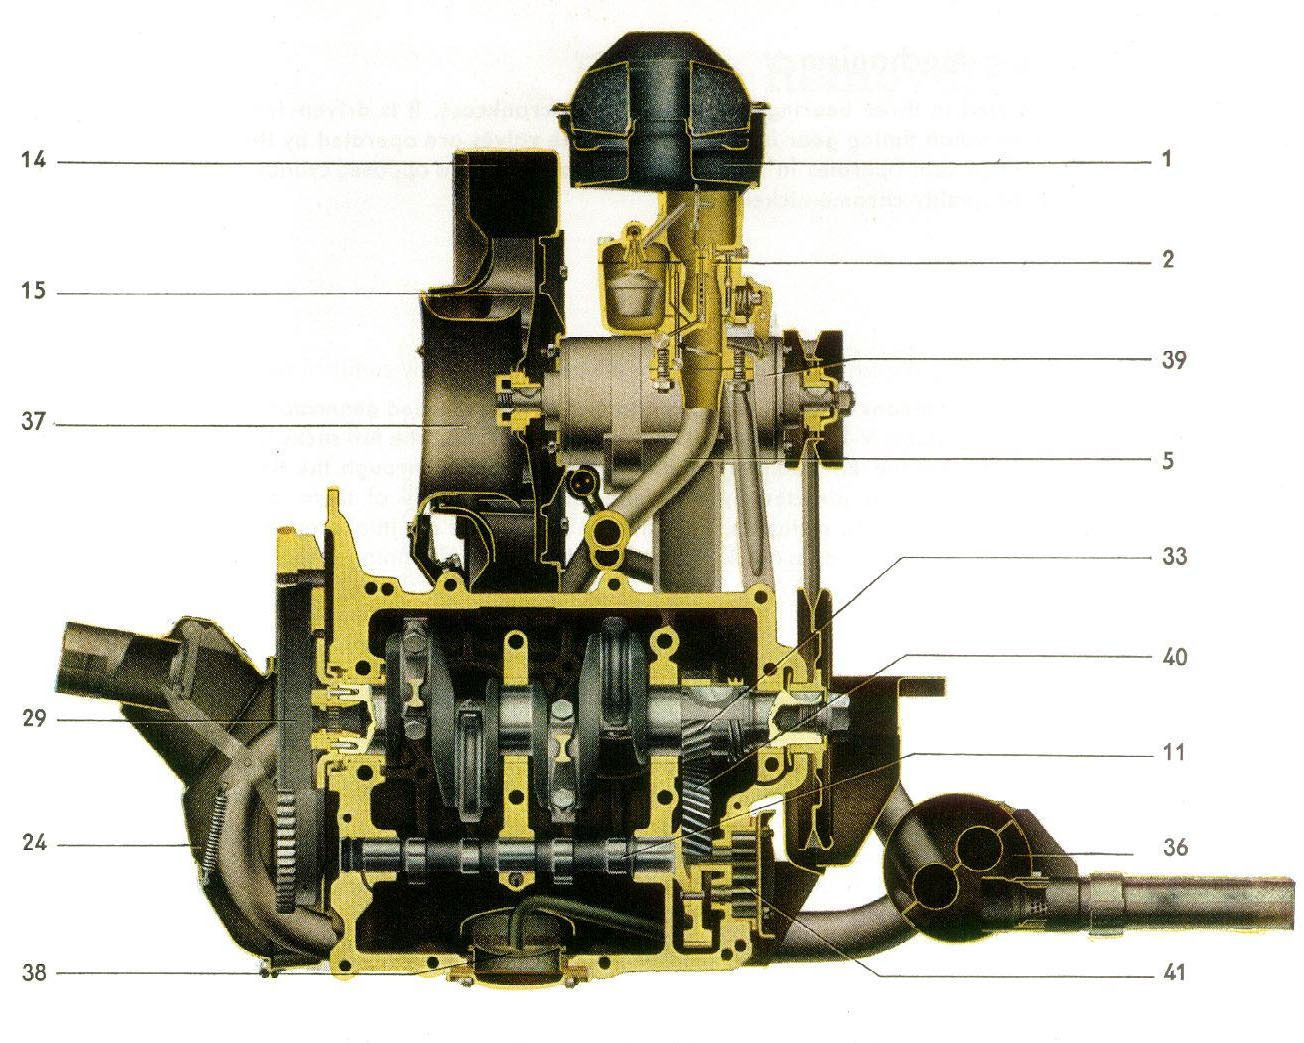 vw 2 0 engine diagram vw engine cutaway | powerplant. | pinterest | engine ... #13